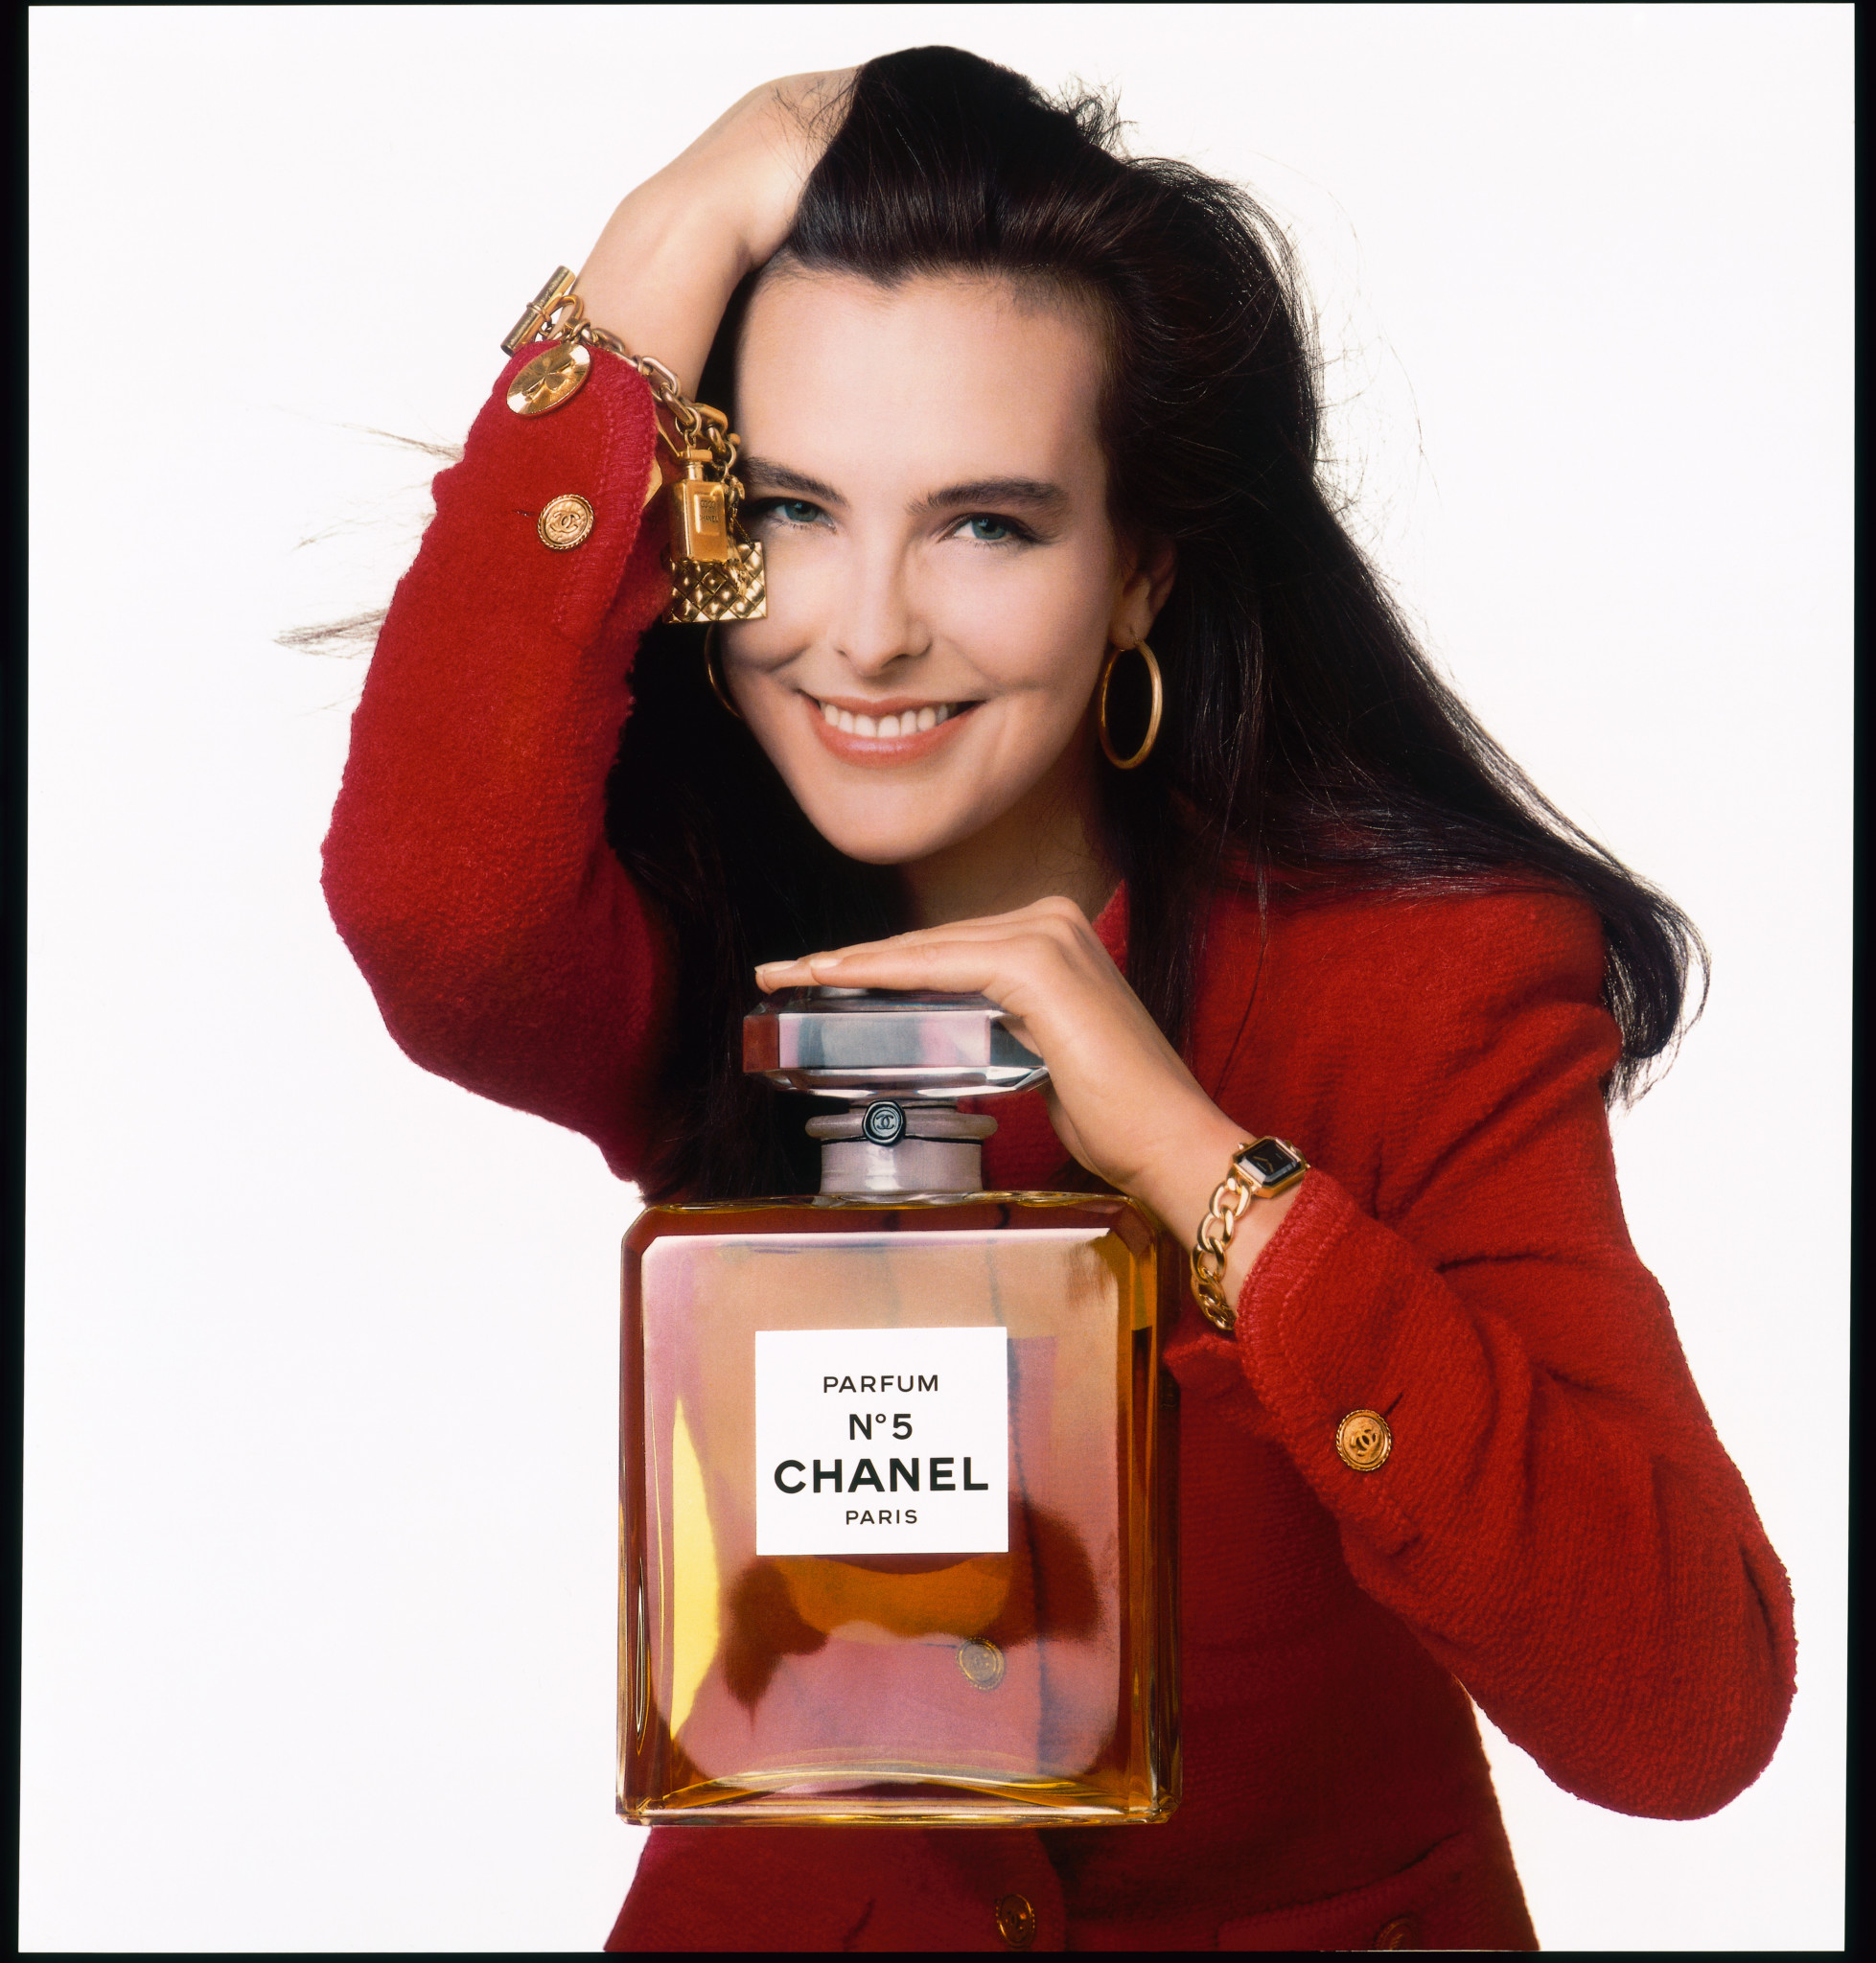 The original Chanel Premiere, launched with Carole Bouquet, in 1989.